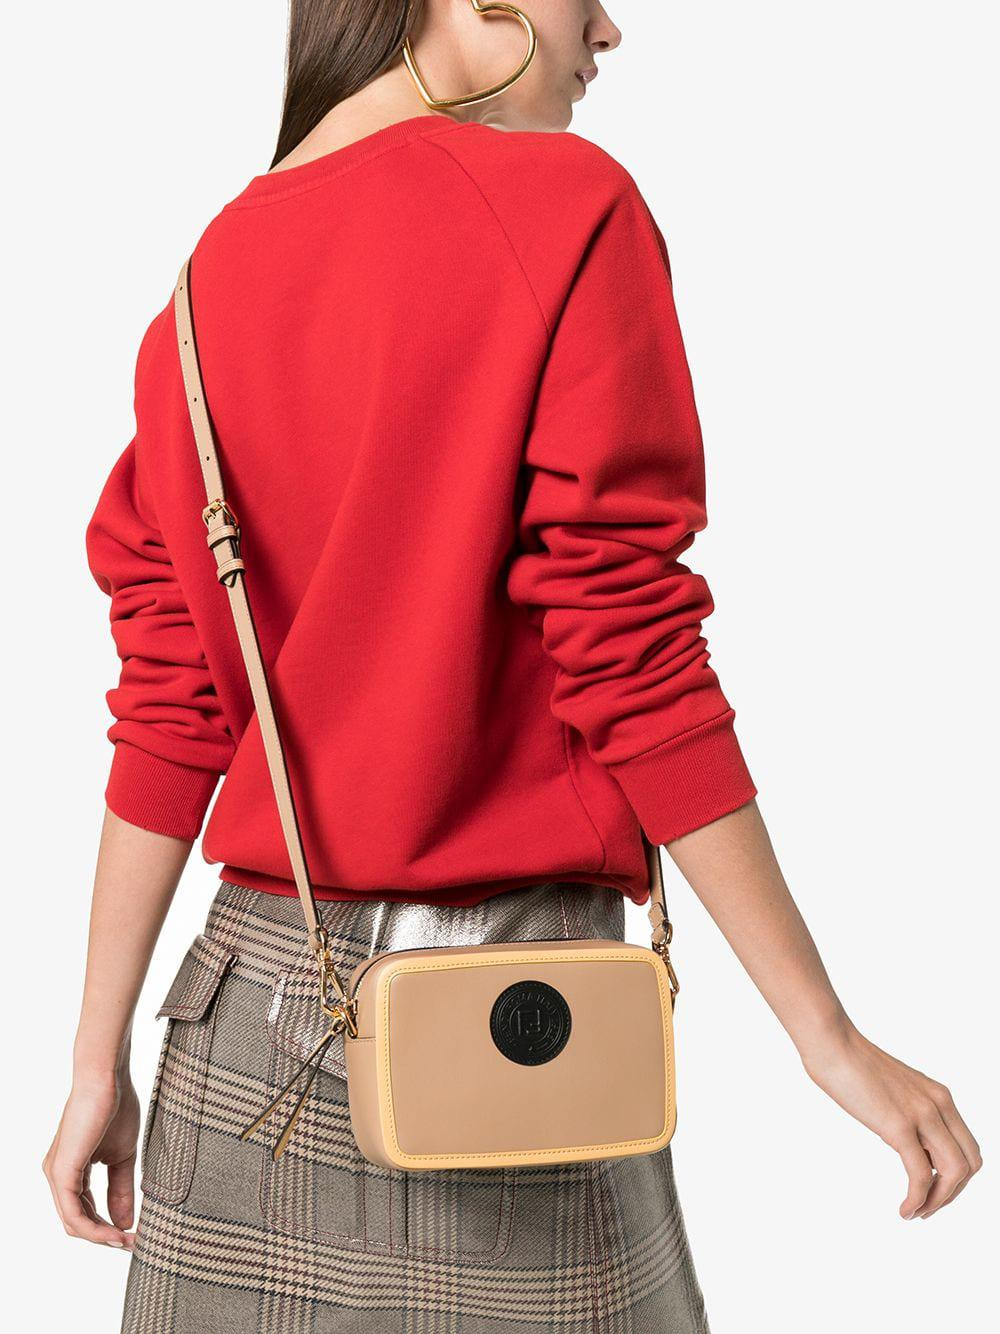 dec908034225 Fendi - Multicolor Nude Mini Camera Leather Cross-body Bag - Lyst. View  fullscreen